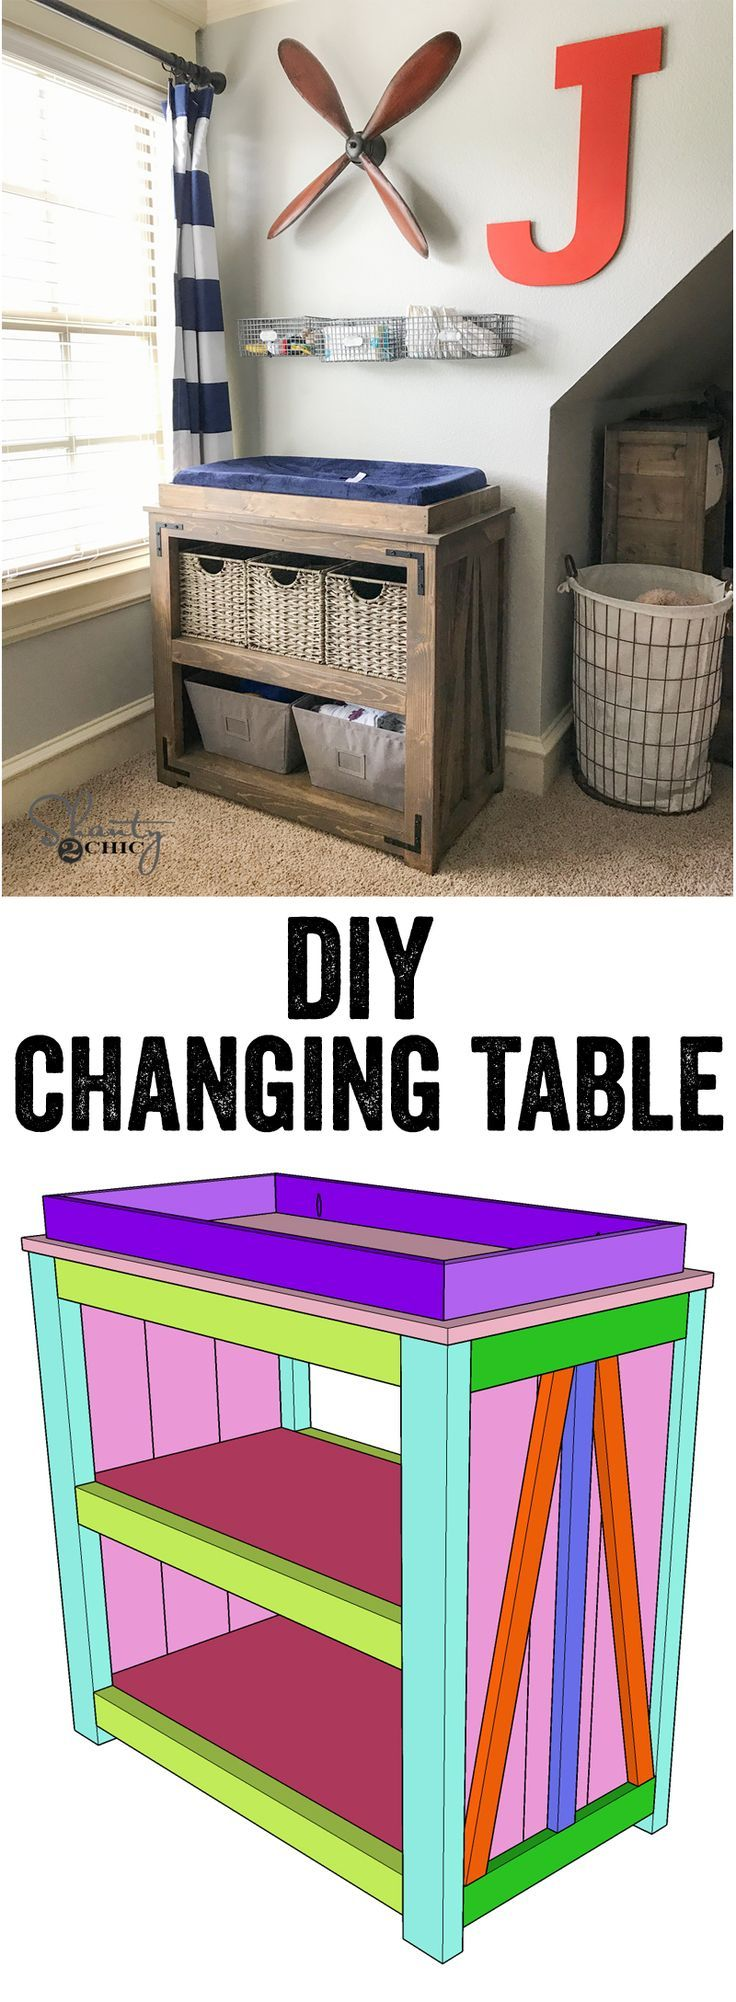 Diy Changing Table Free Plans And Video Tutorial All